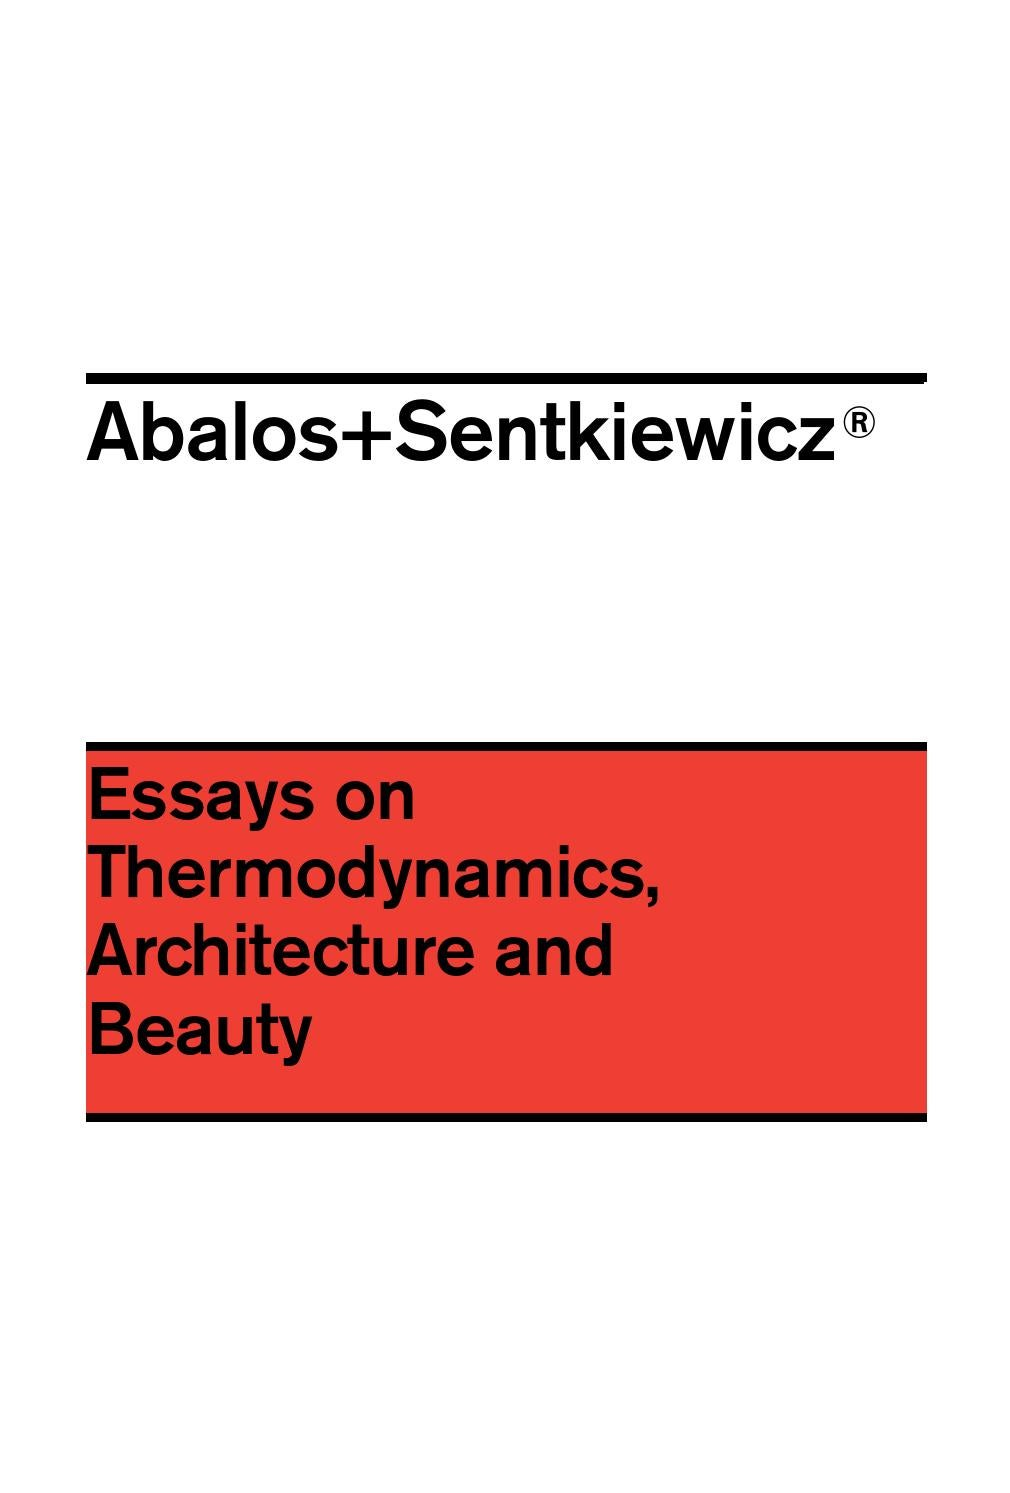 abalos sentkiewicz essays on thermodynamics architecture and essays on thermodynamics architecture and beauty